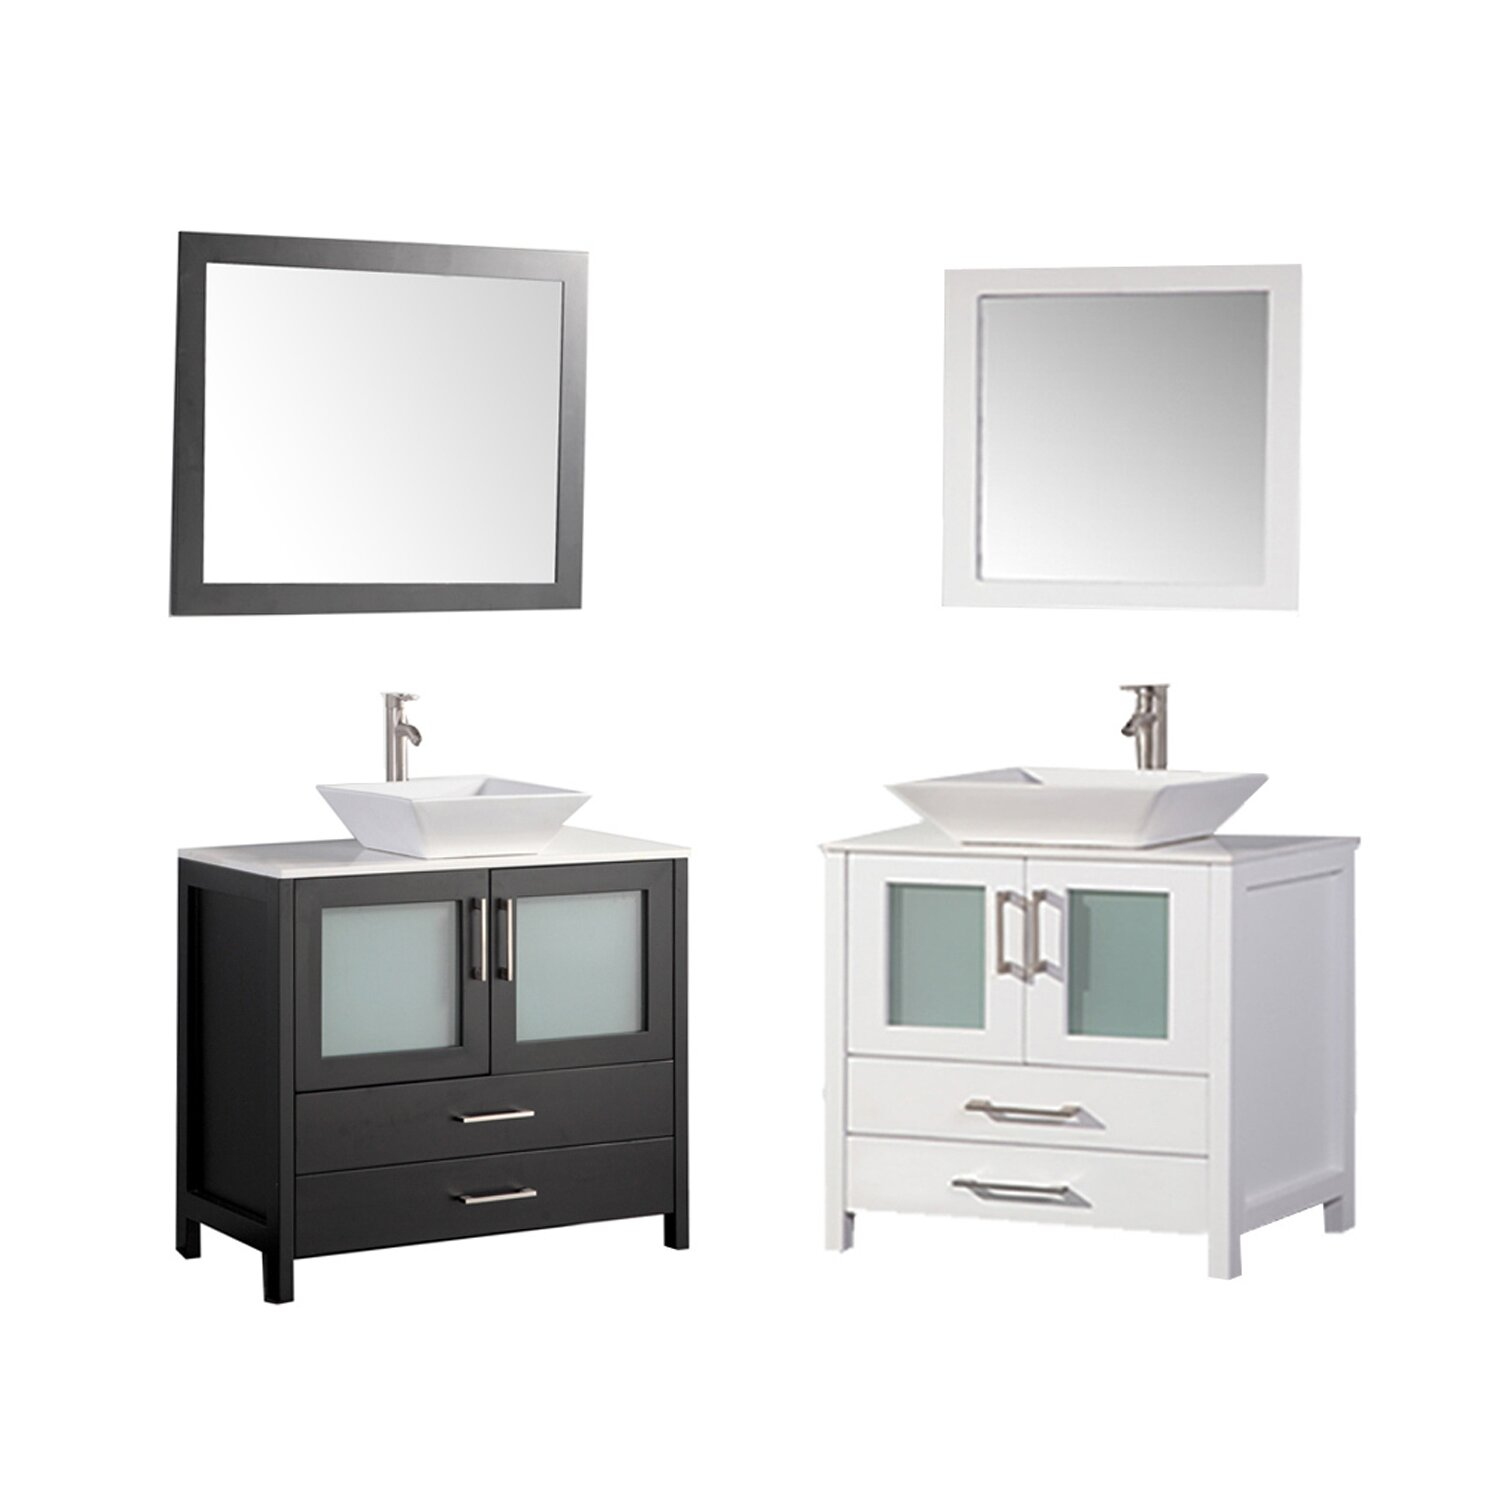 Mtdvanities jordan 36 bathroom vanity set with mirror for Mirrors for bathroom vanity